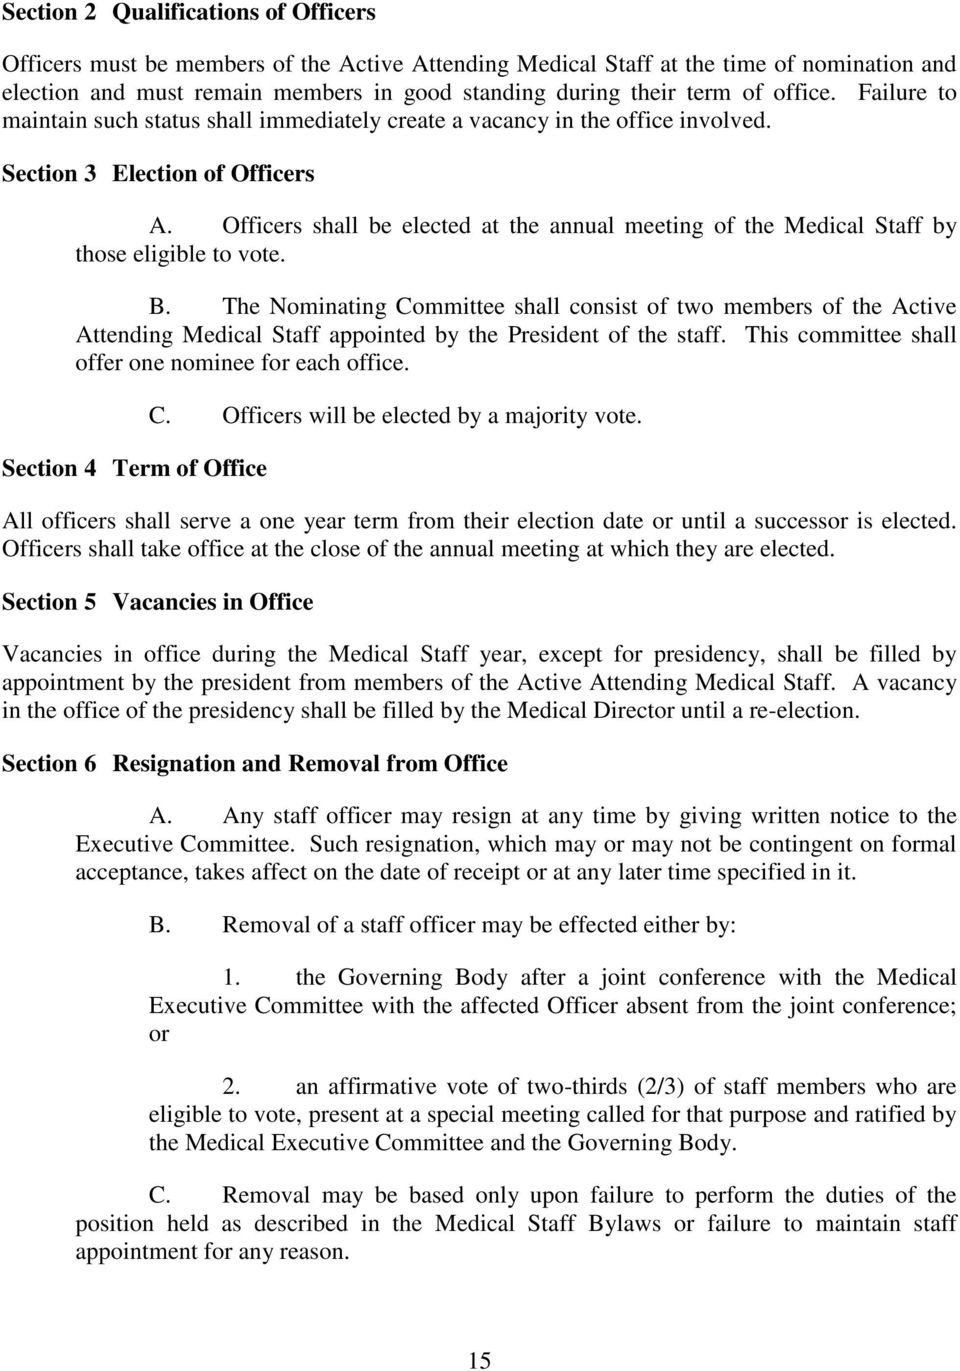 Officers shall be elected at the annual meeting of the Medical Staff by those eligible to vote. B.